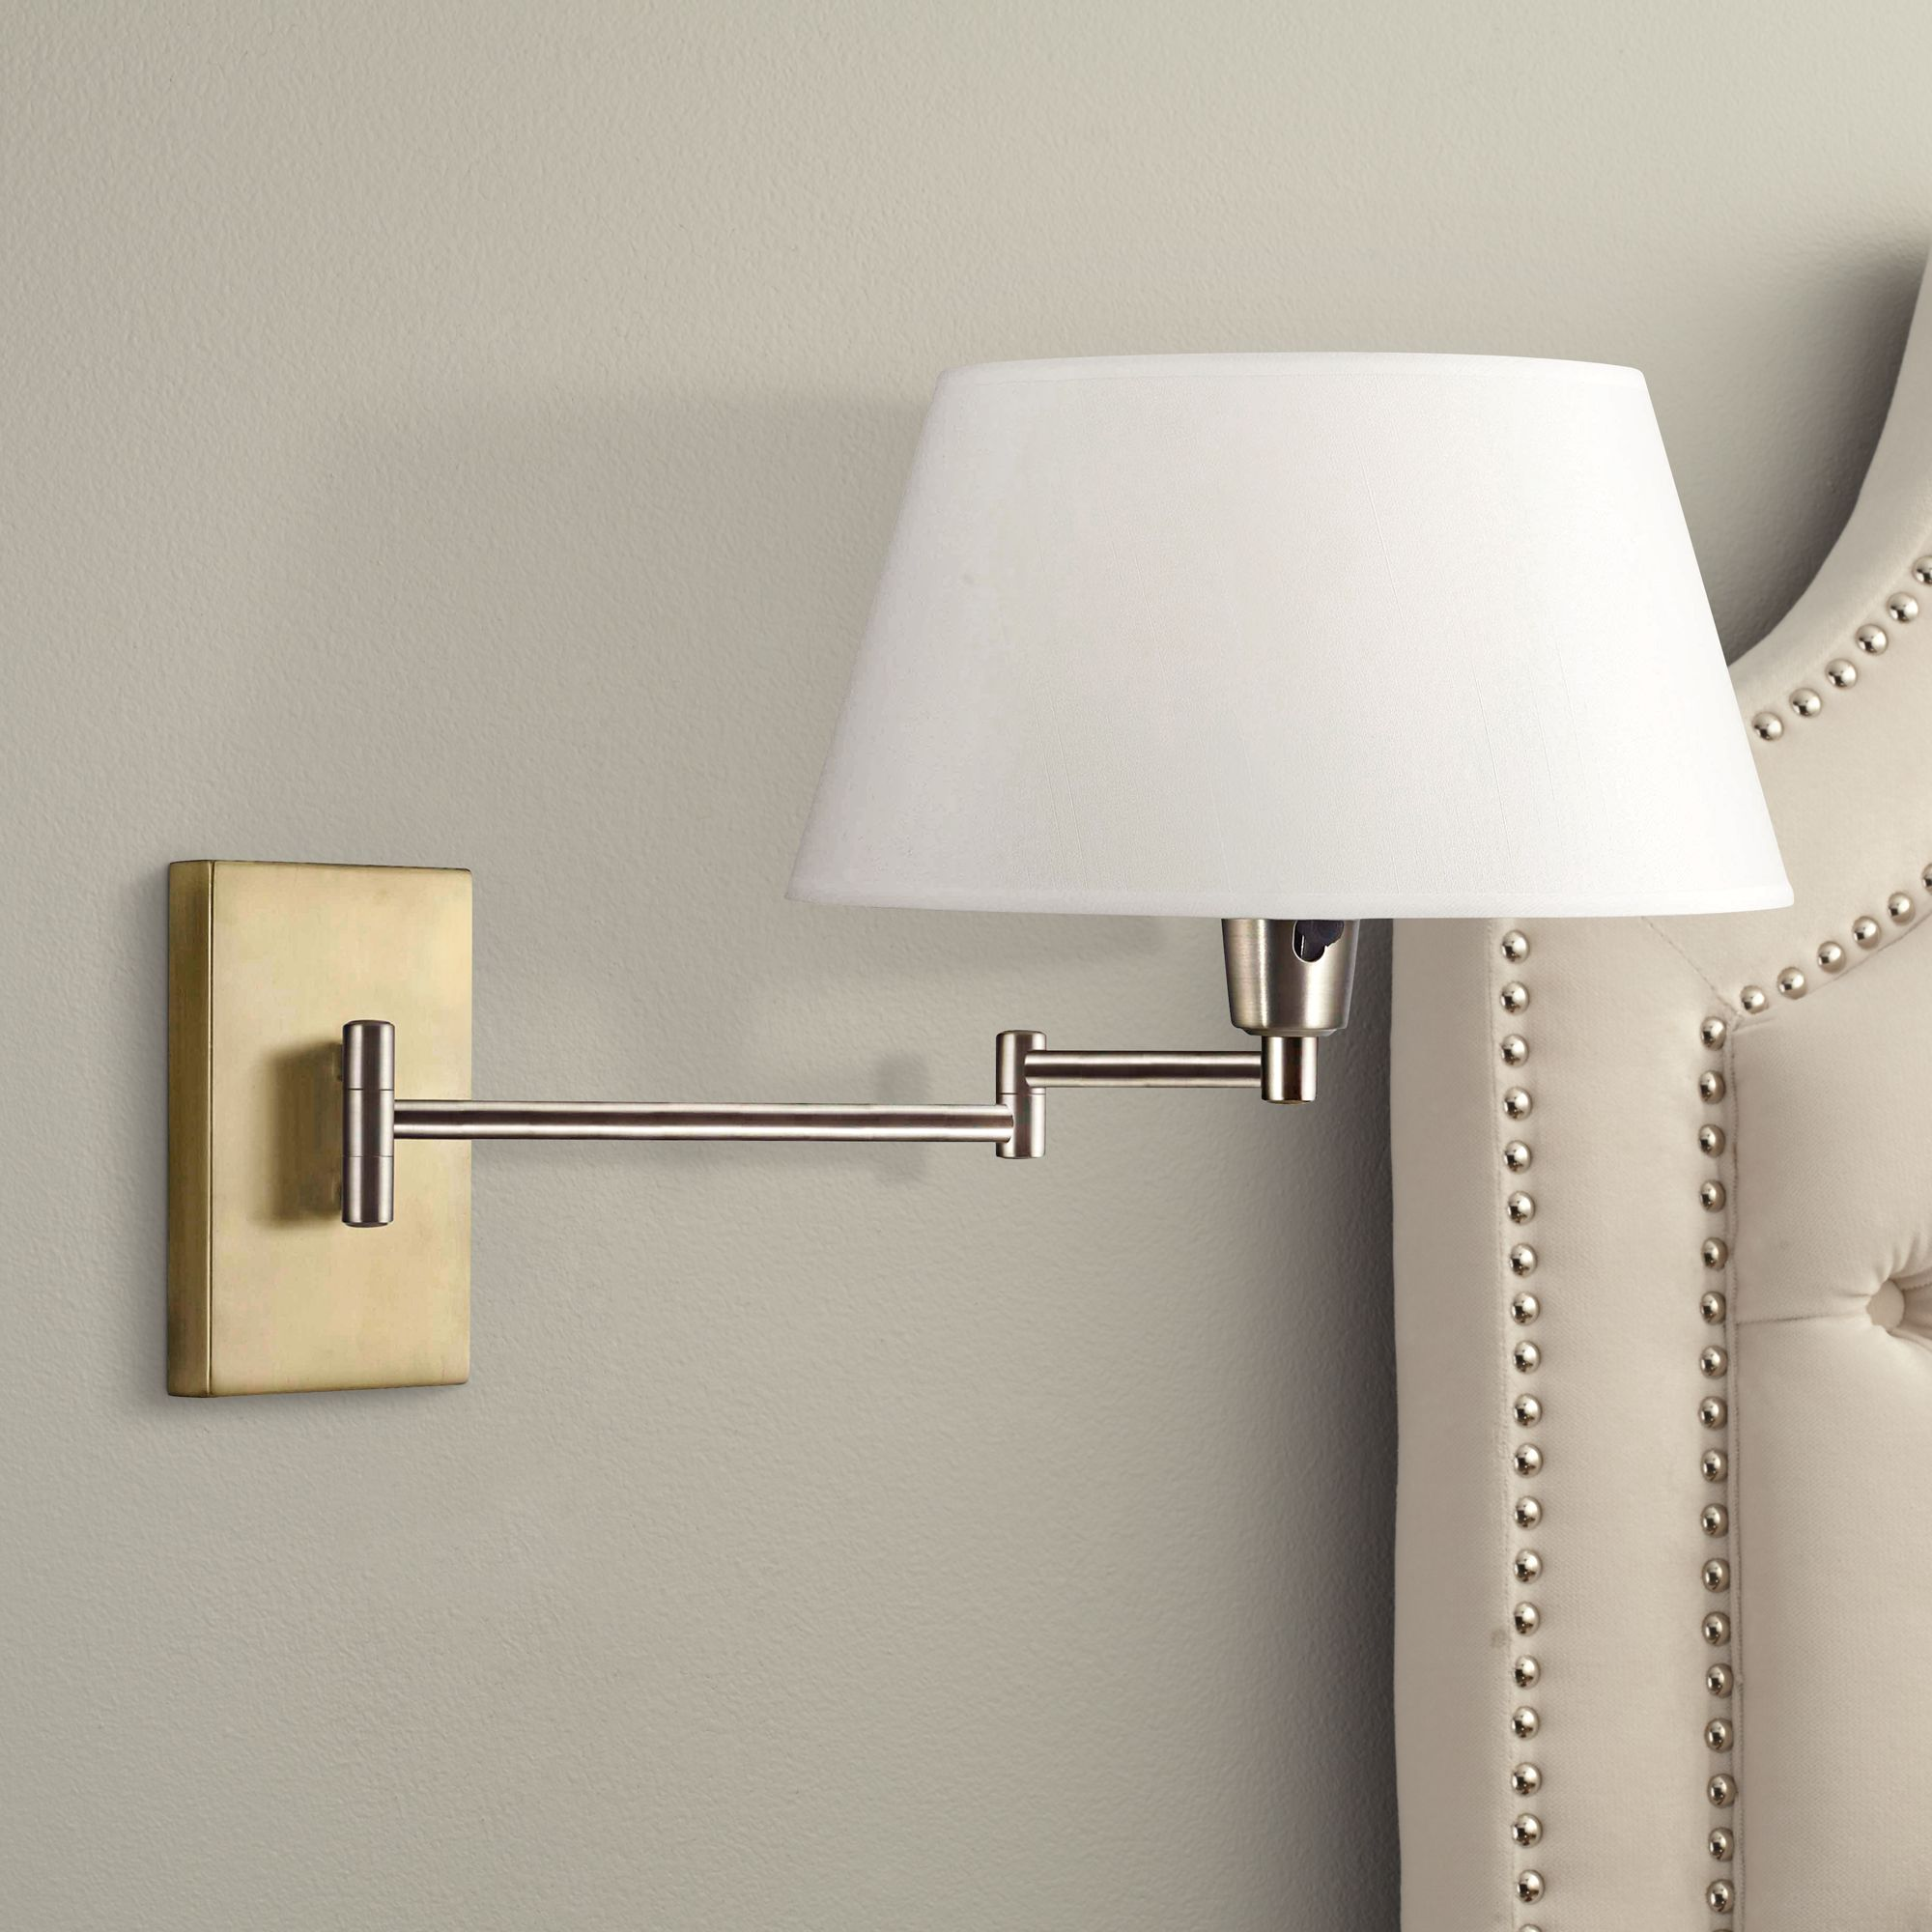 kenroy element vintage brass swing arm plugin wall light